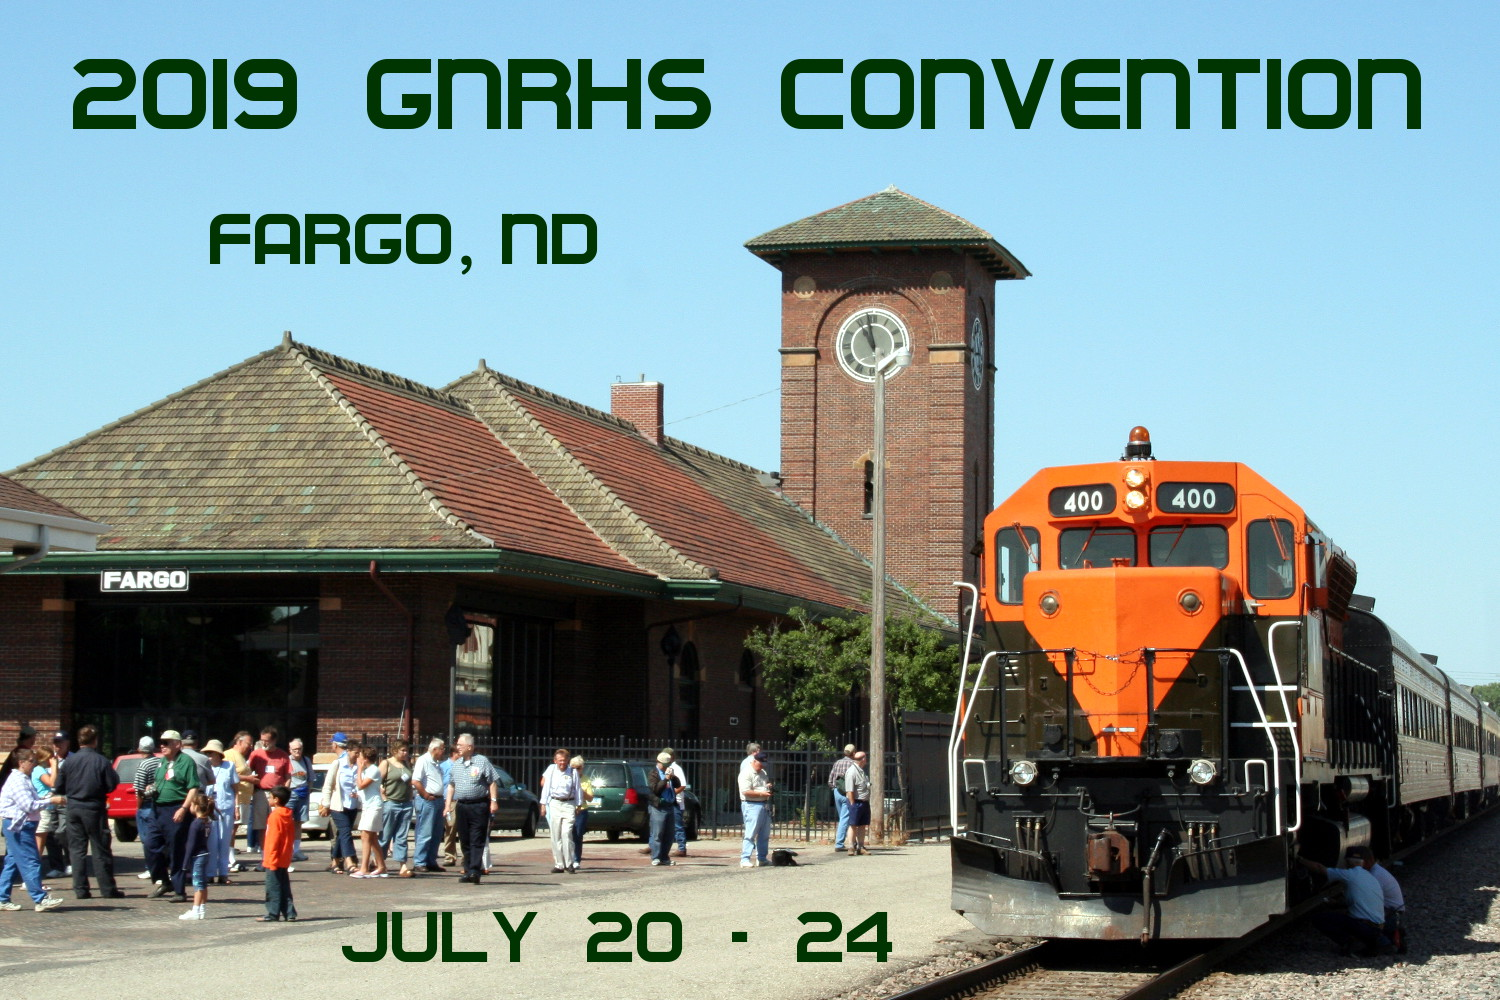 2019 GNRHS Convention - Fargo